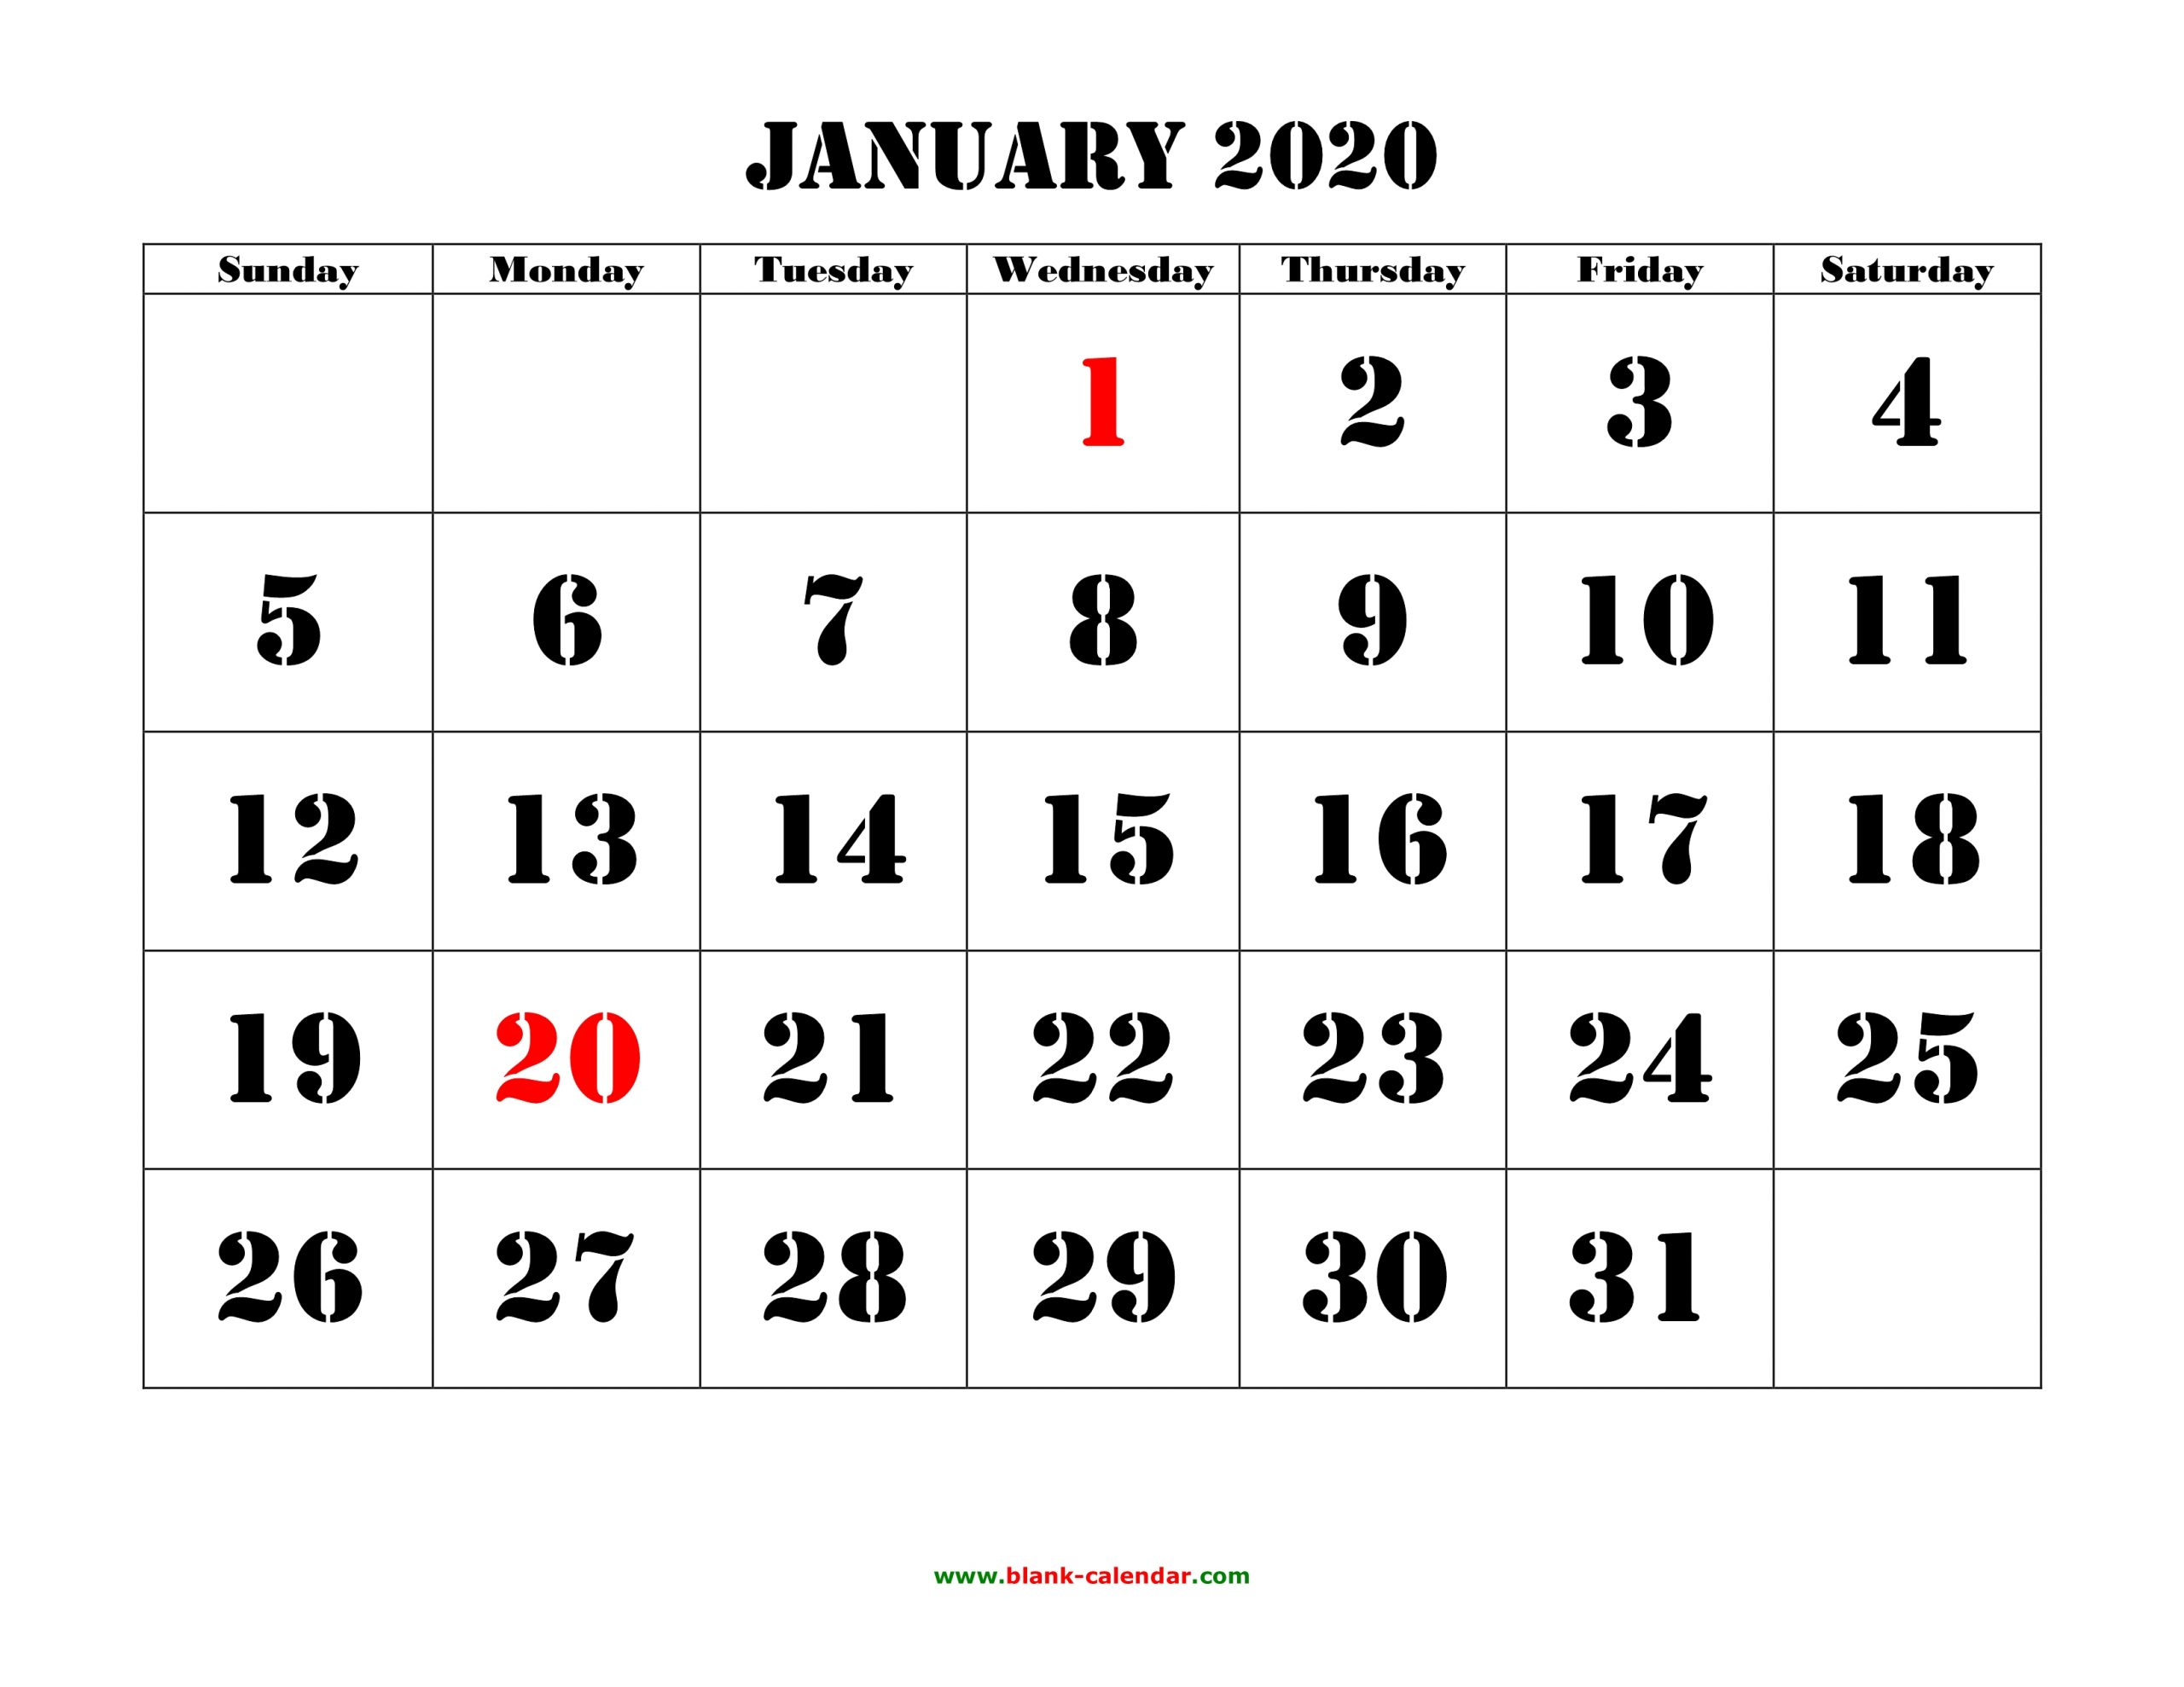 Free Download Printable January 2020 Calendar, Large Font